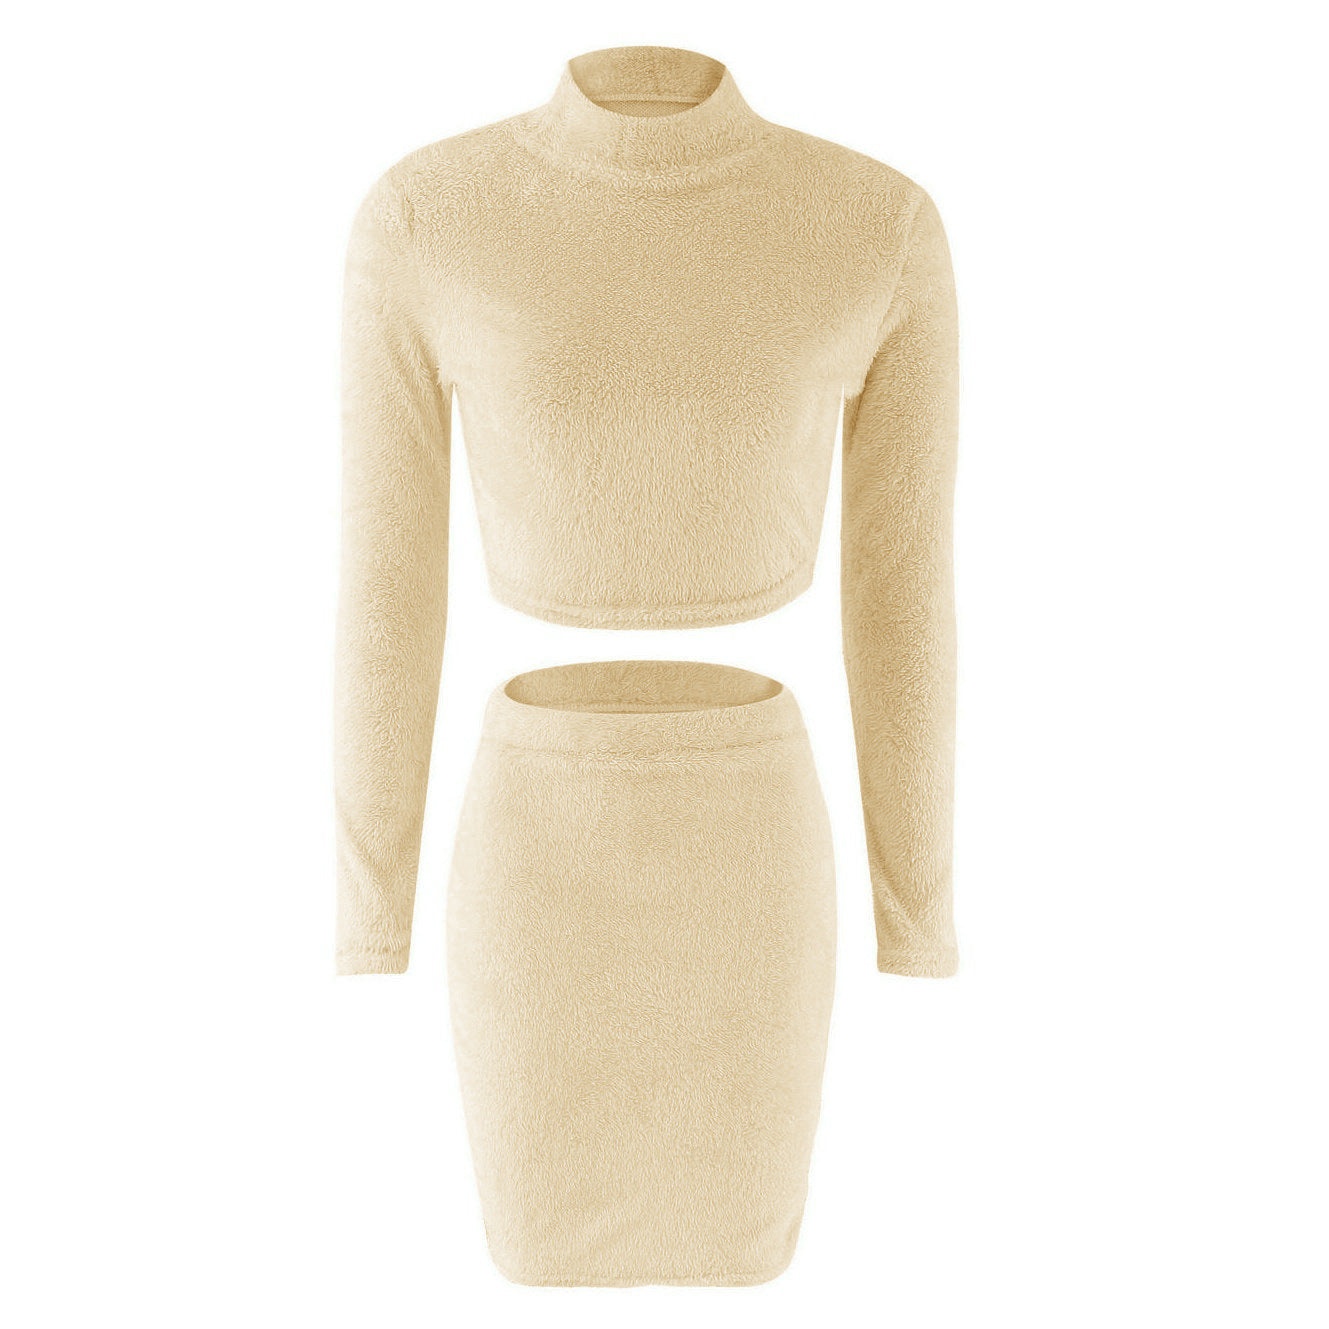 beige two piece turtleneck crop top, skirt set